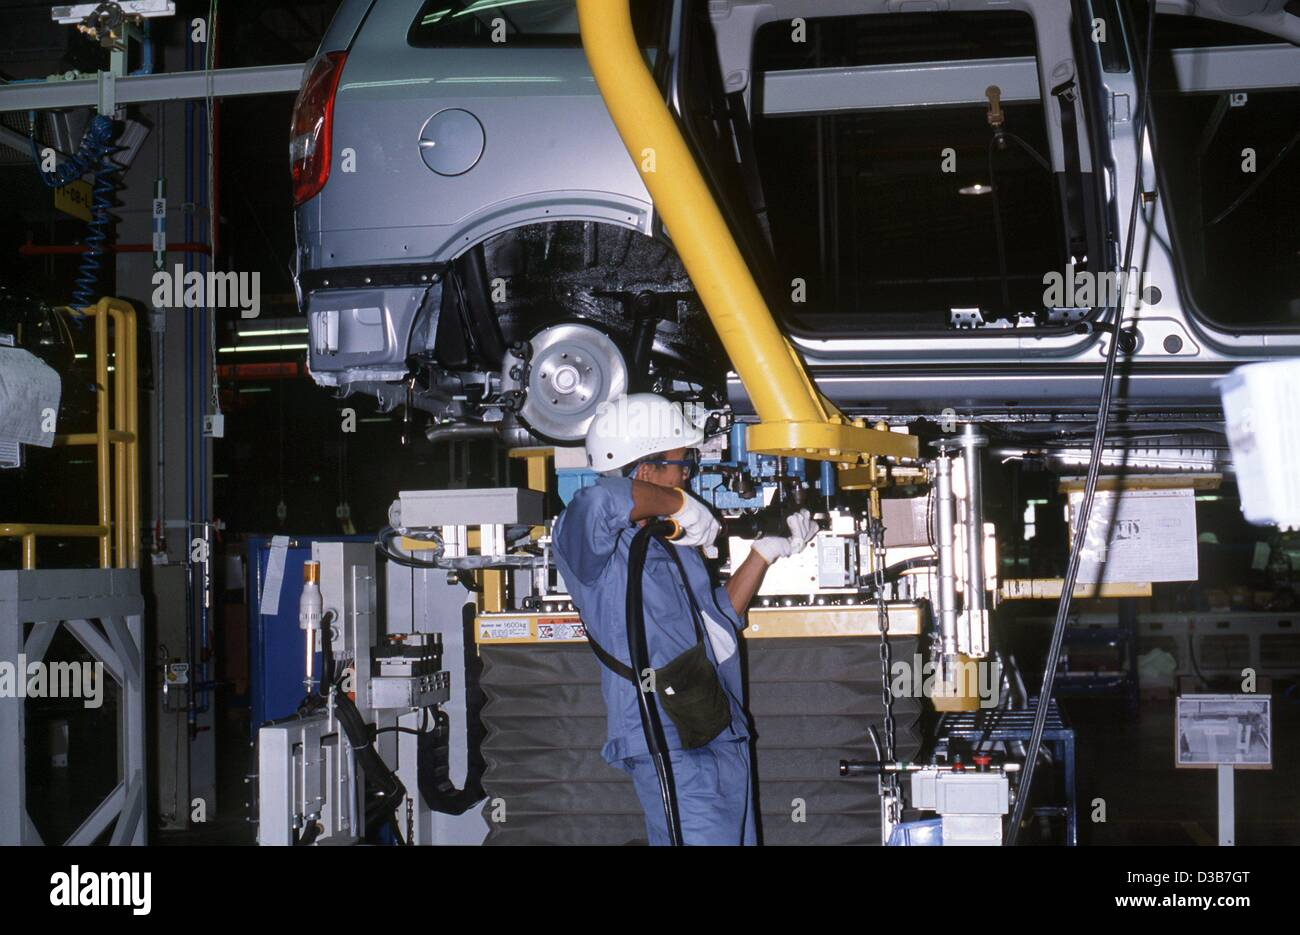 (dpa files) - An employee works on the assembly line of the General Motors car plant in Rayong, Thailand, February - Stock Image